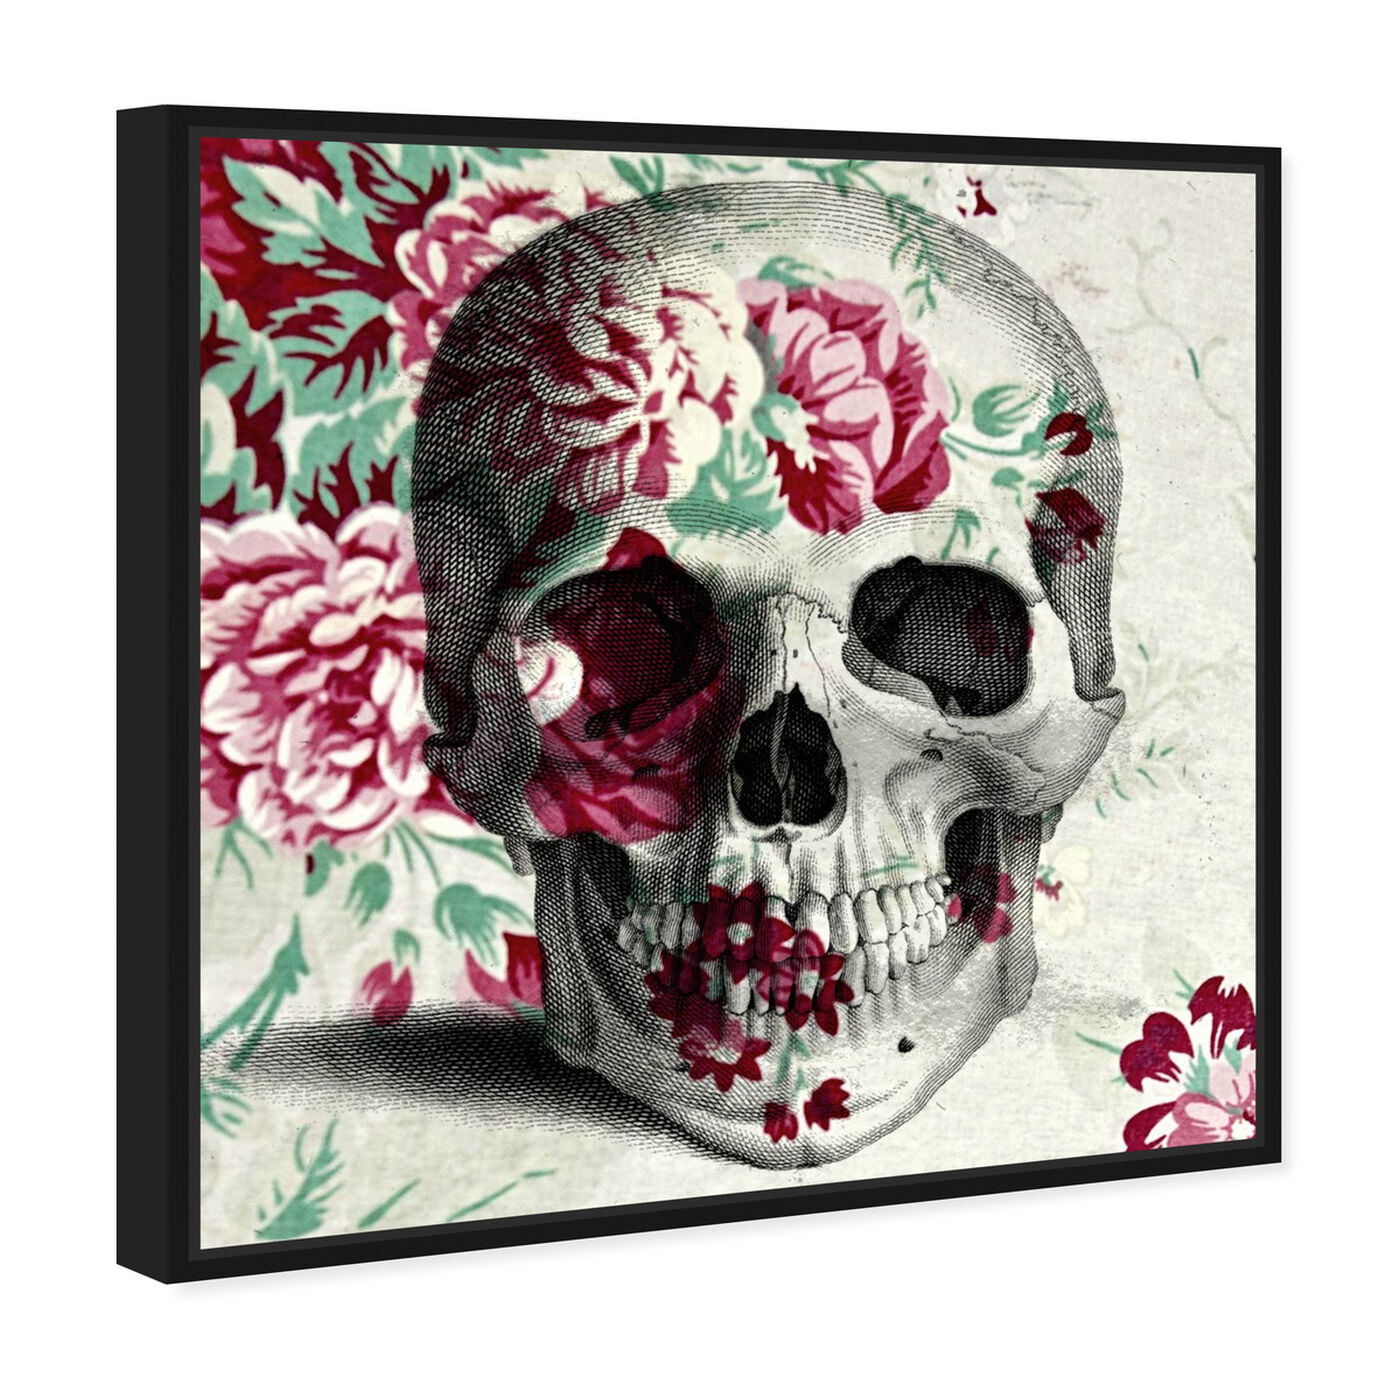 Angled view of Spring Skull featuring symbols and objects and skull art.